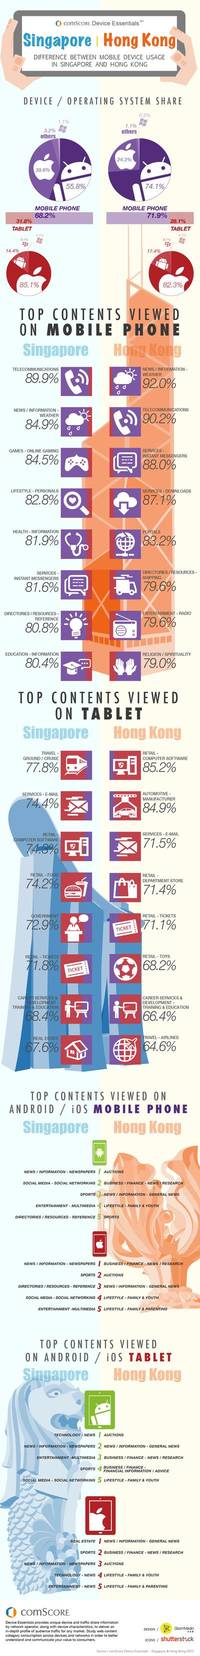 mobile device usage: singapore v/s hong kong